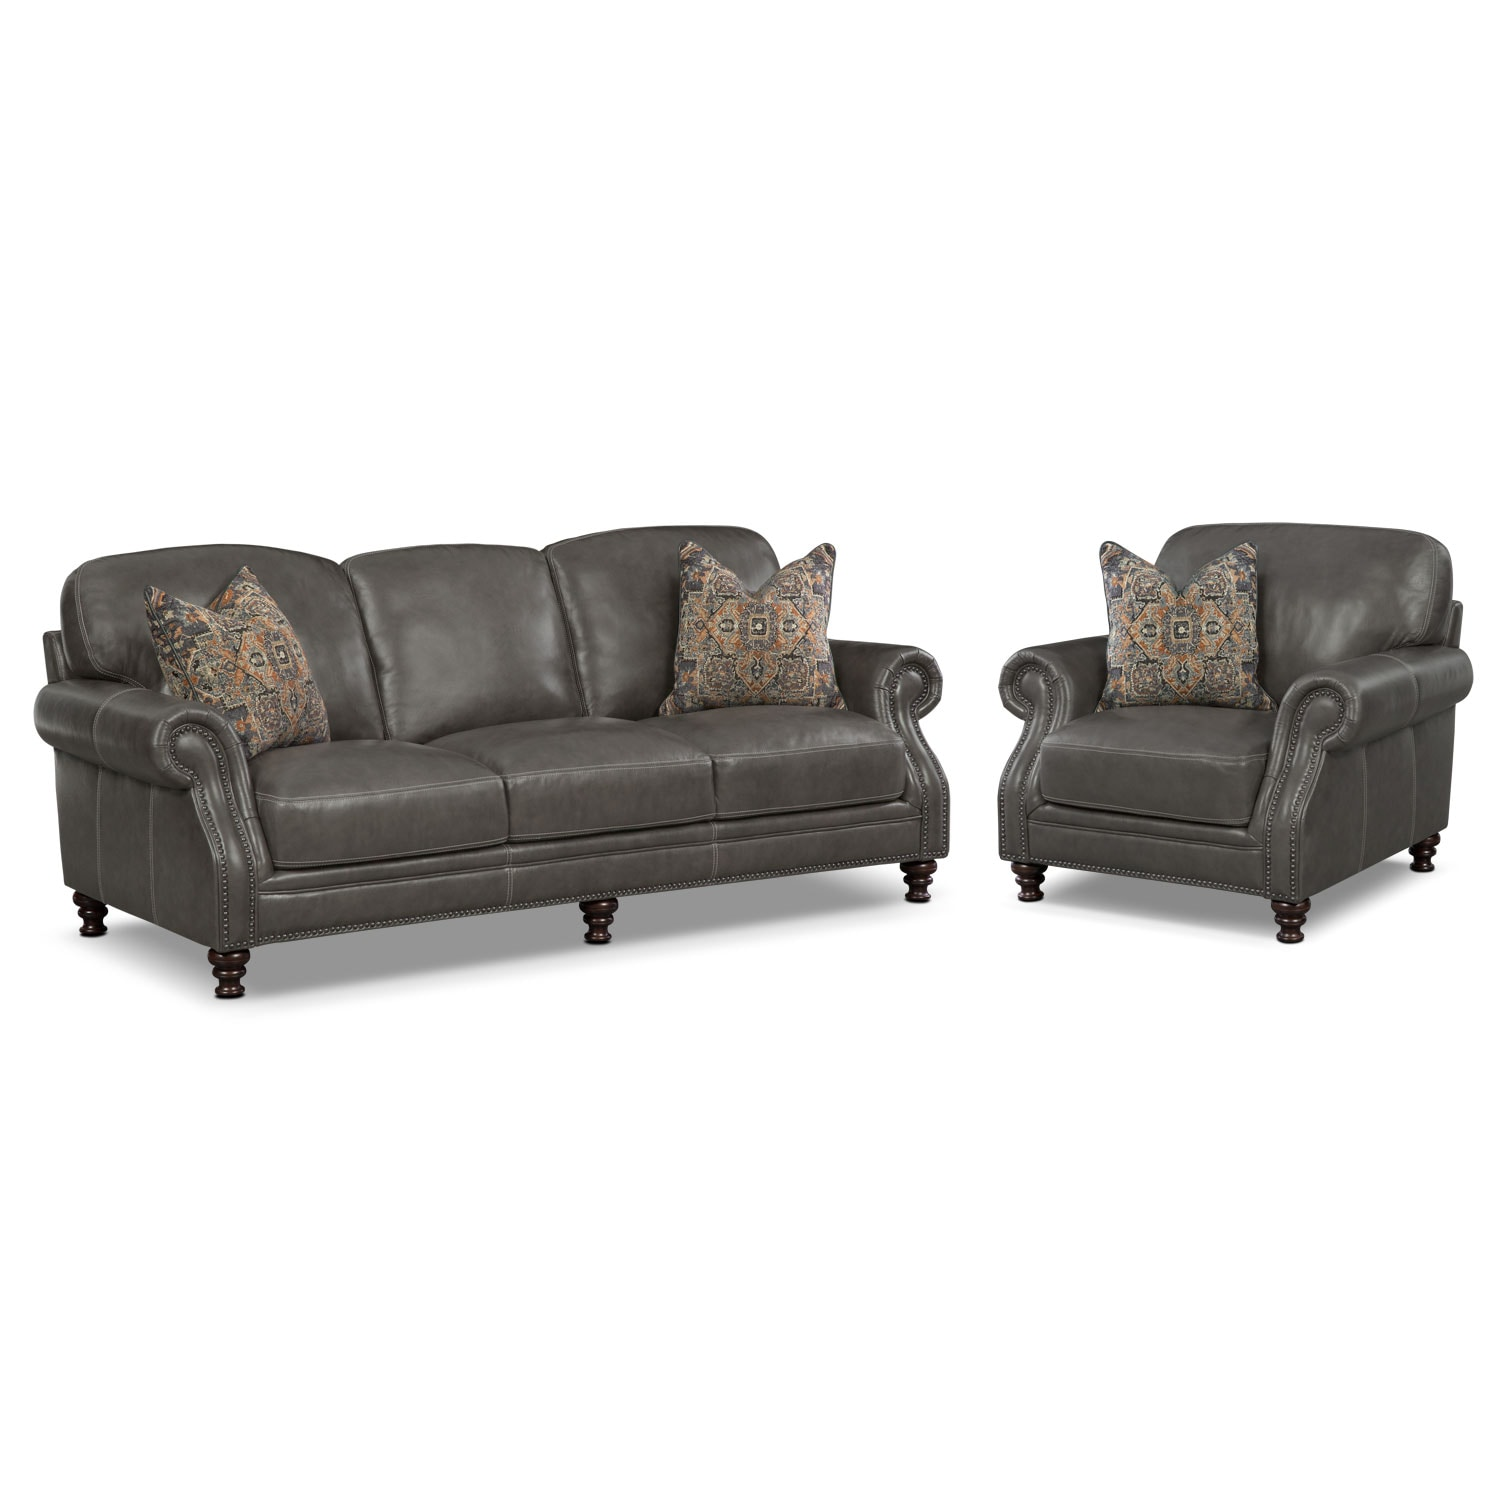 Living Room Furniture - Carrington Charcoal 2 Pc. Living Room w/ Chair